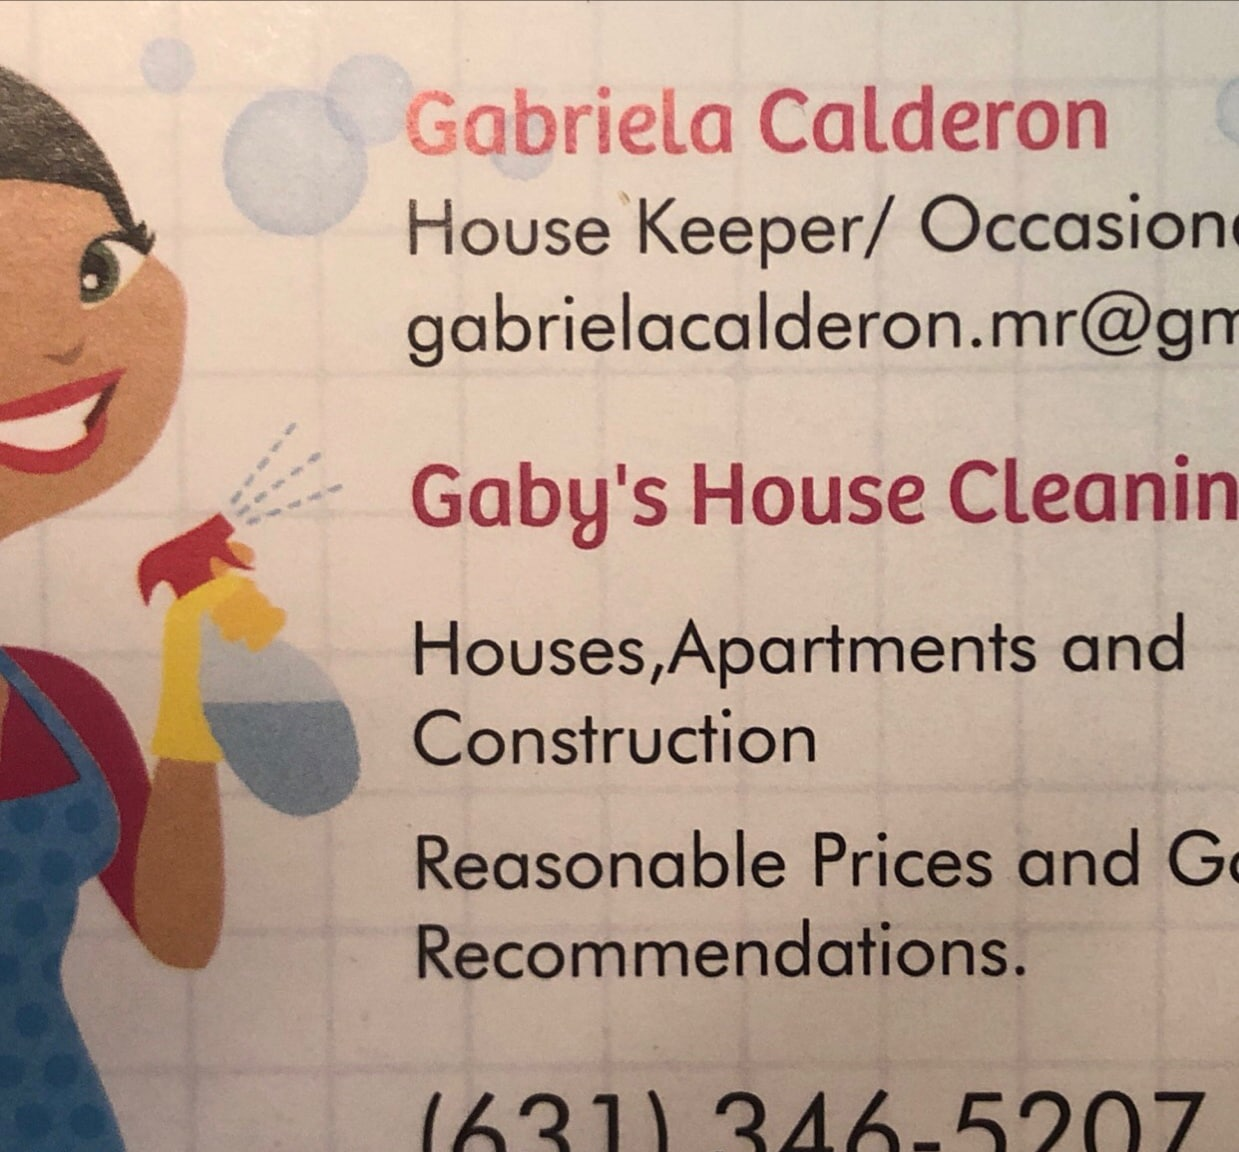 Gaby's House Cleaning